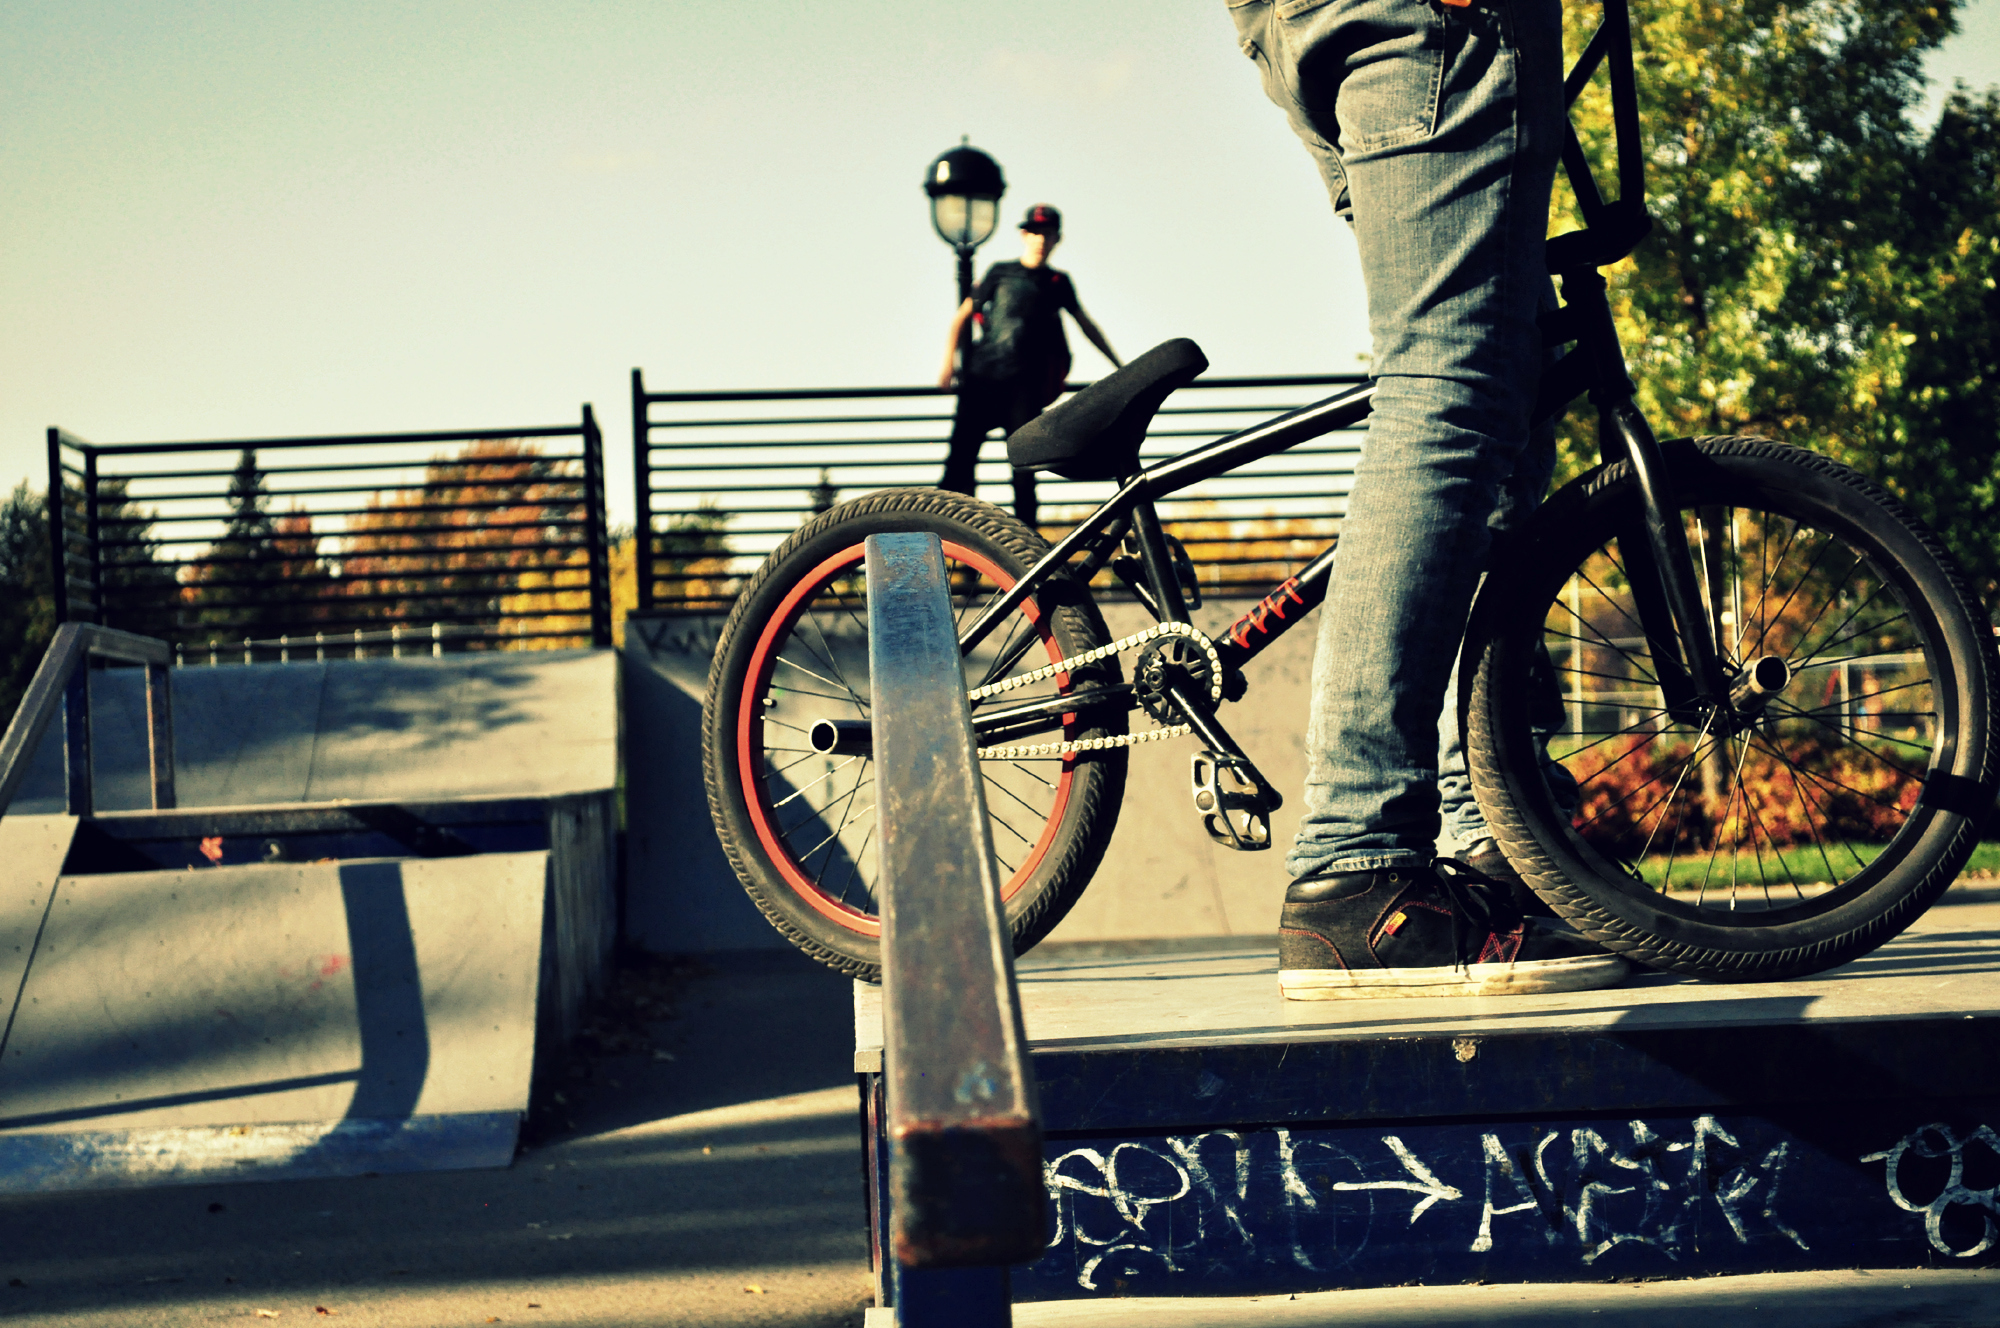 17 bmx hd wallpapers background images wallpaper abyss hd wallpaper background image id242420 voltagebd Choice Image